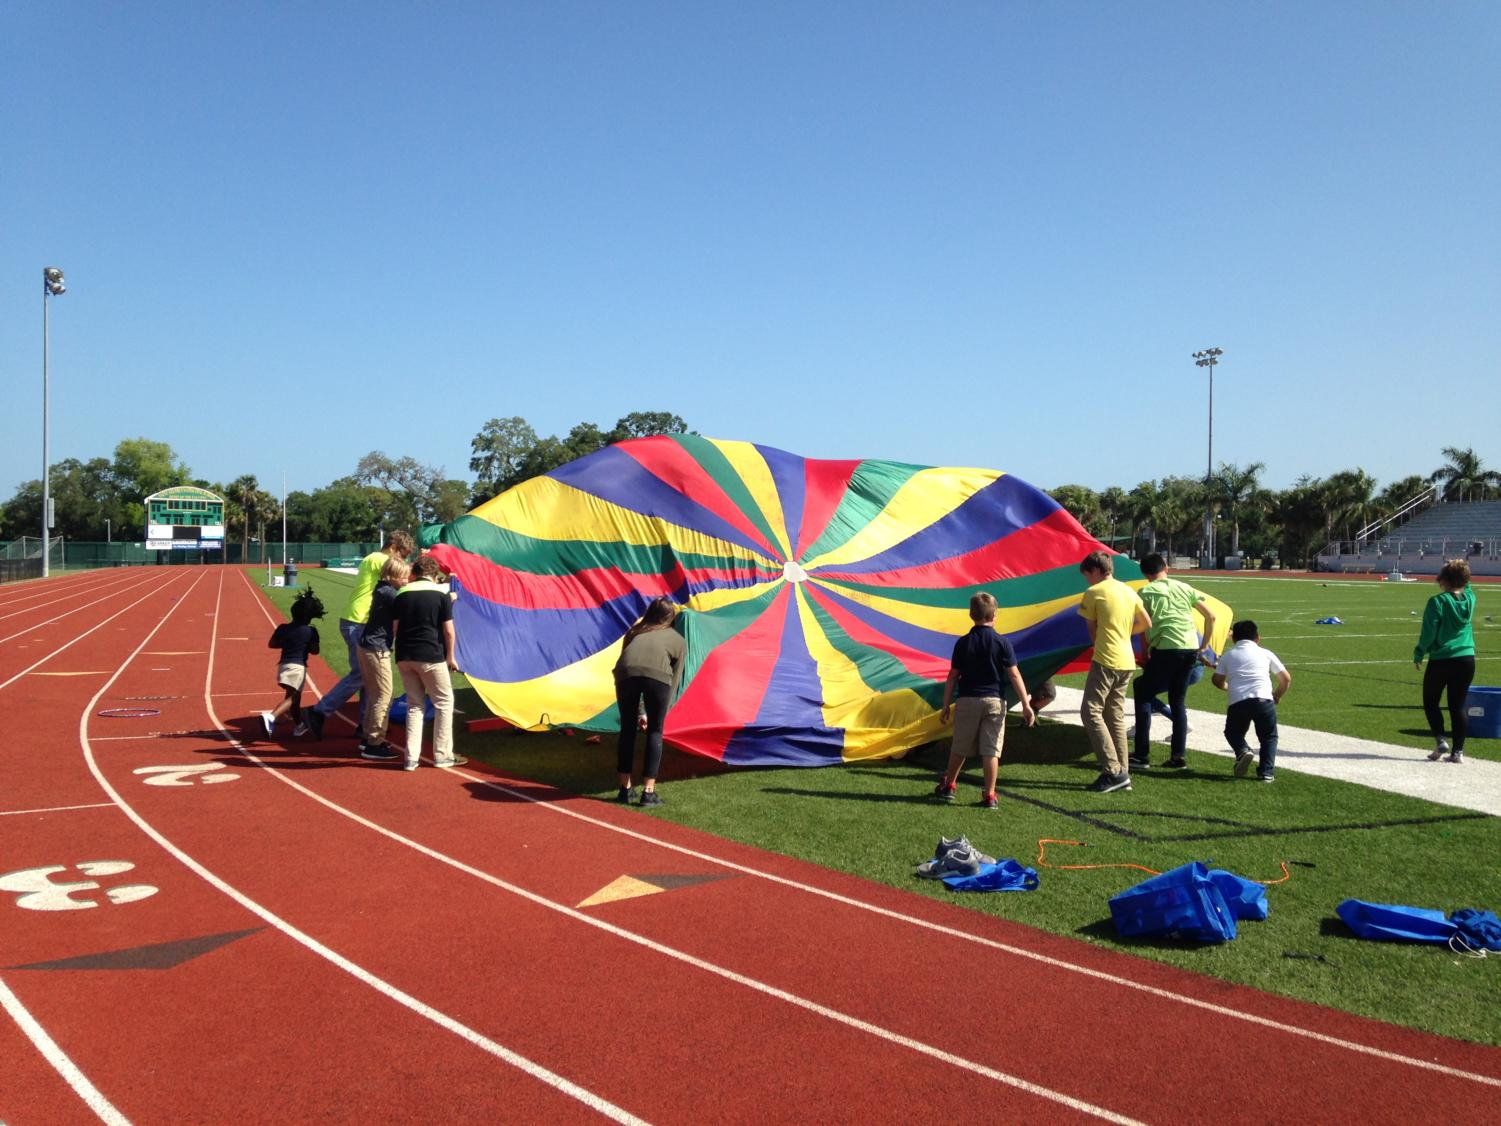 The kids let out some of their energy by playing with a parachute in the field.